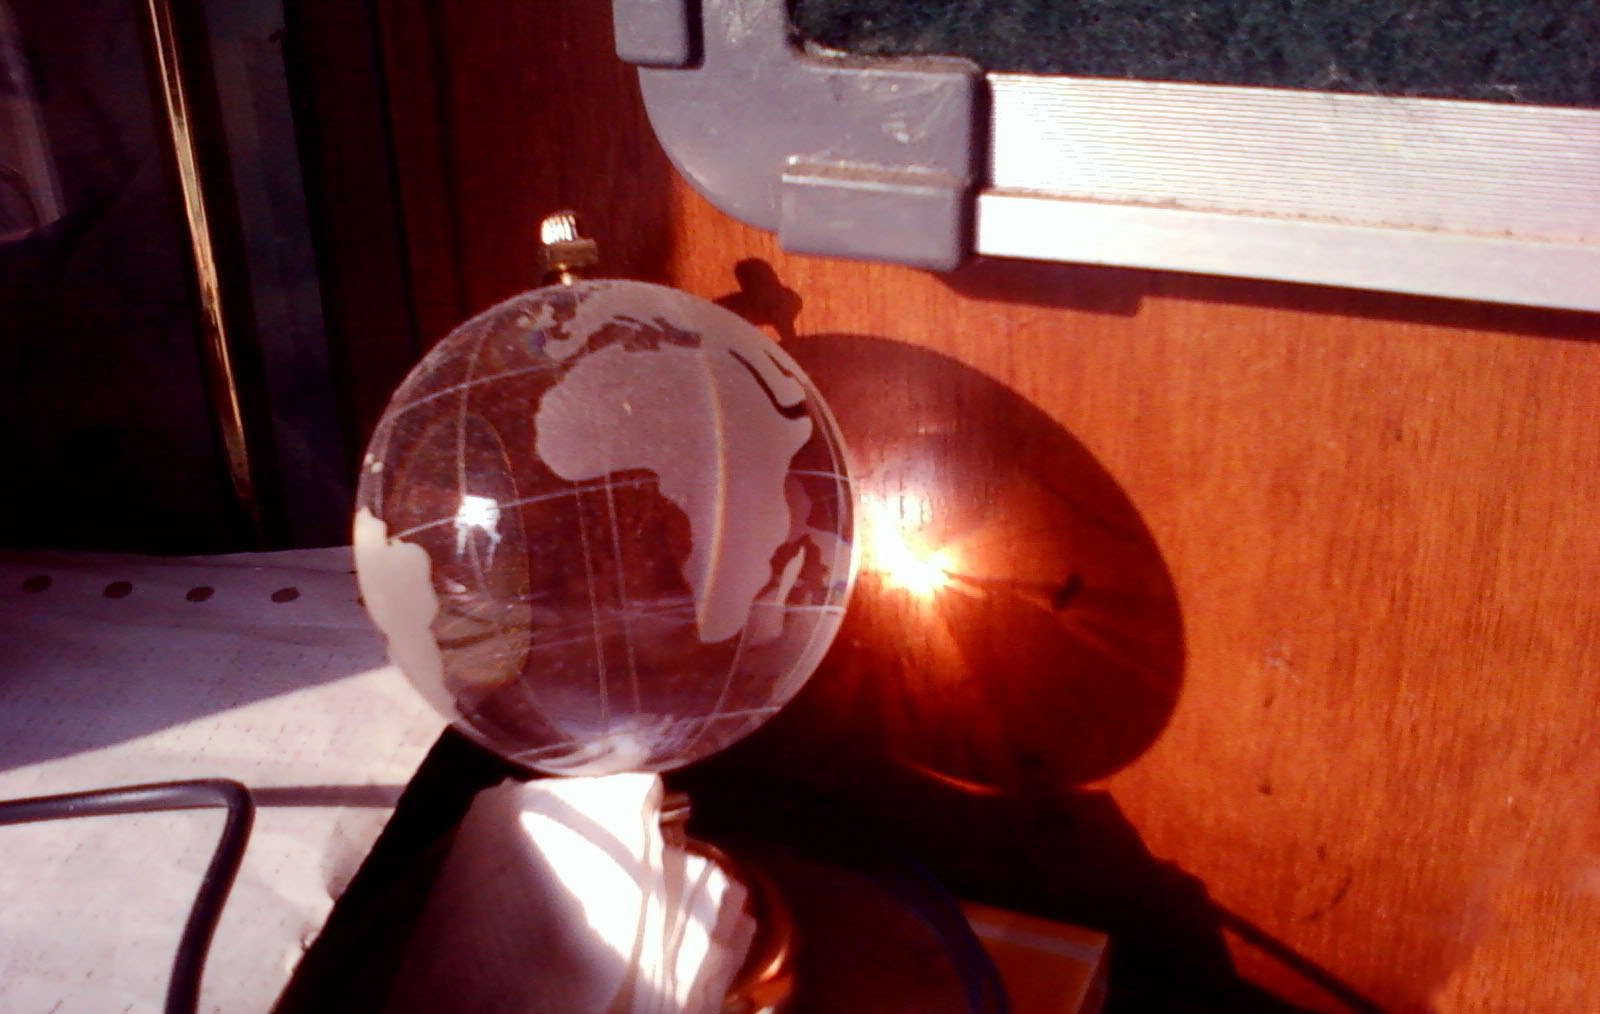 i was studying when i noticed the sun rays falling on the earth globe.. and casting a beautiful pattern beyond it.. i could never miss capturing that